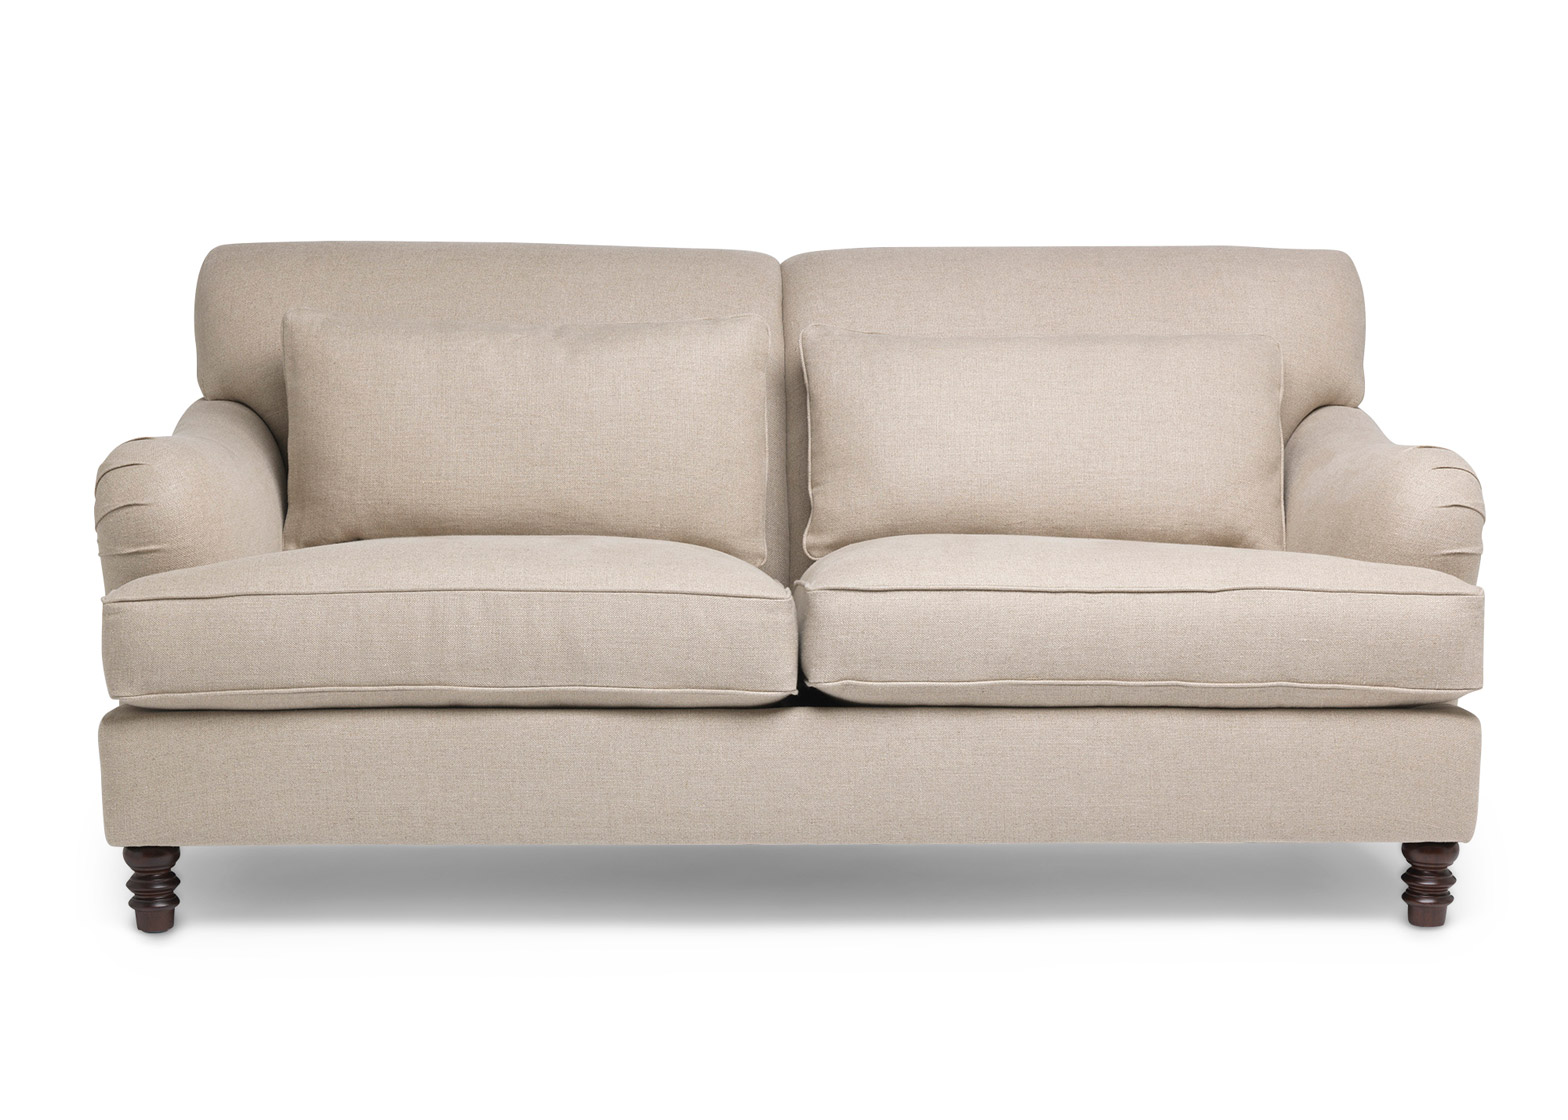 The Sandy Sofa from the Soho Home collection